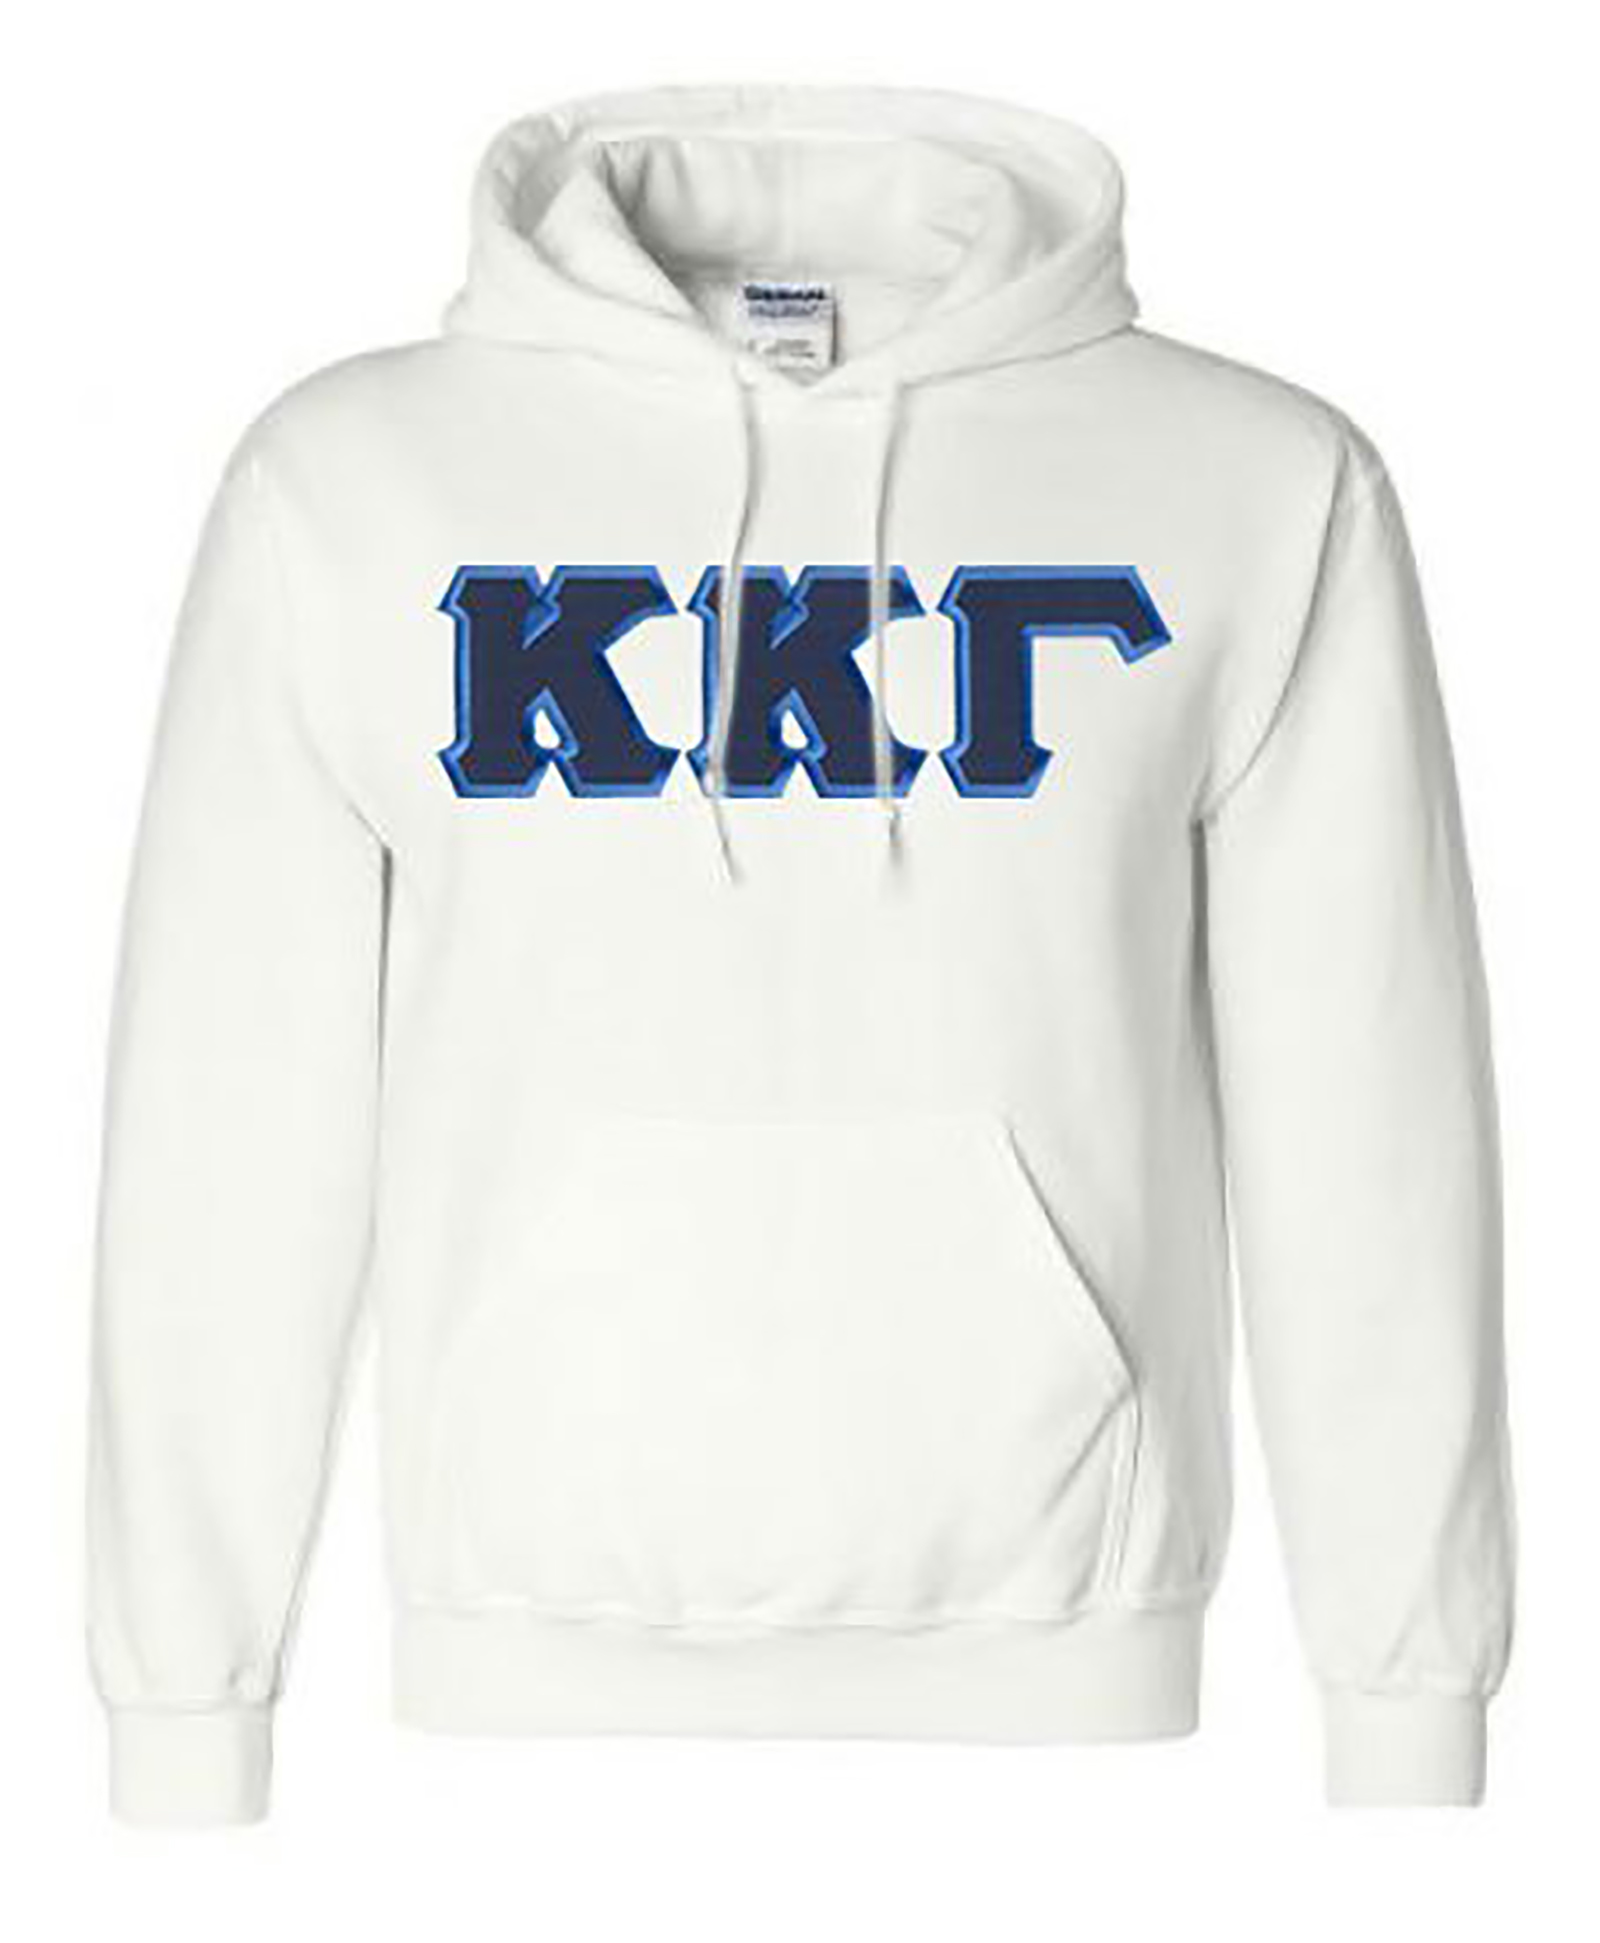 Kappa Kappa Gamma Lettered Game Day Tote Navy Blue